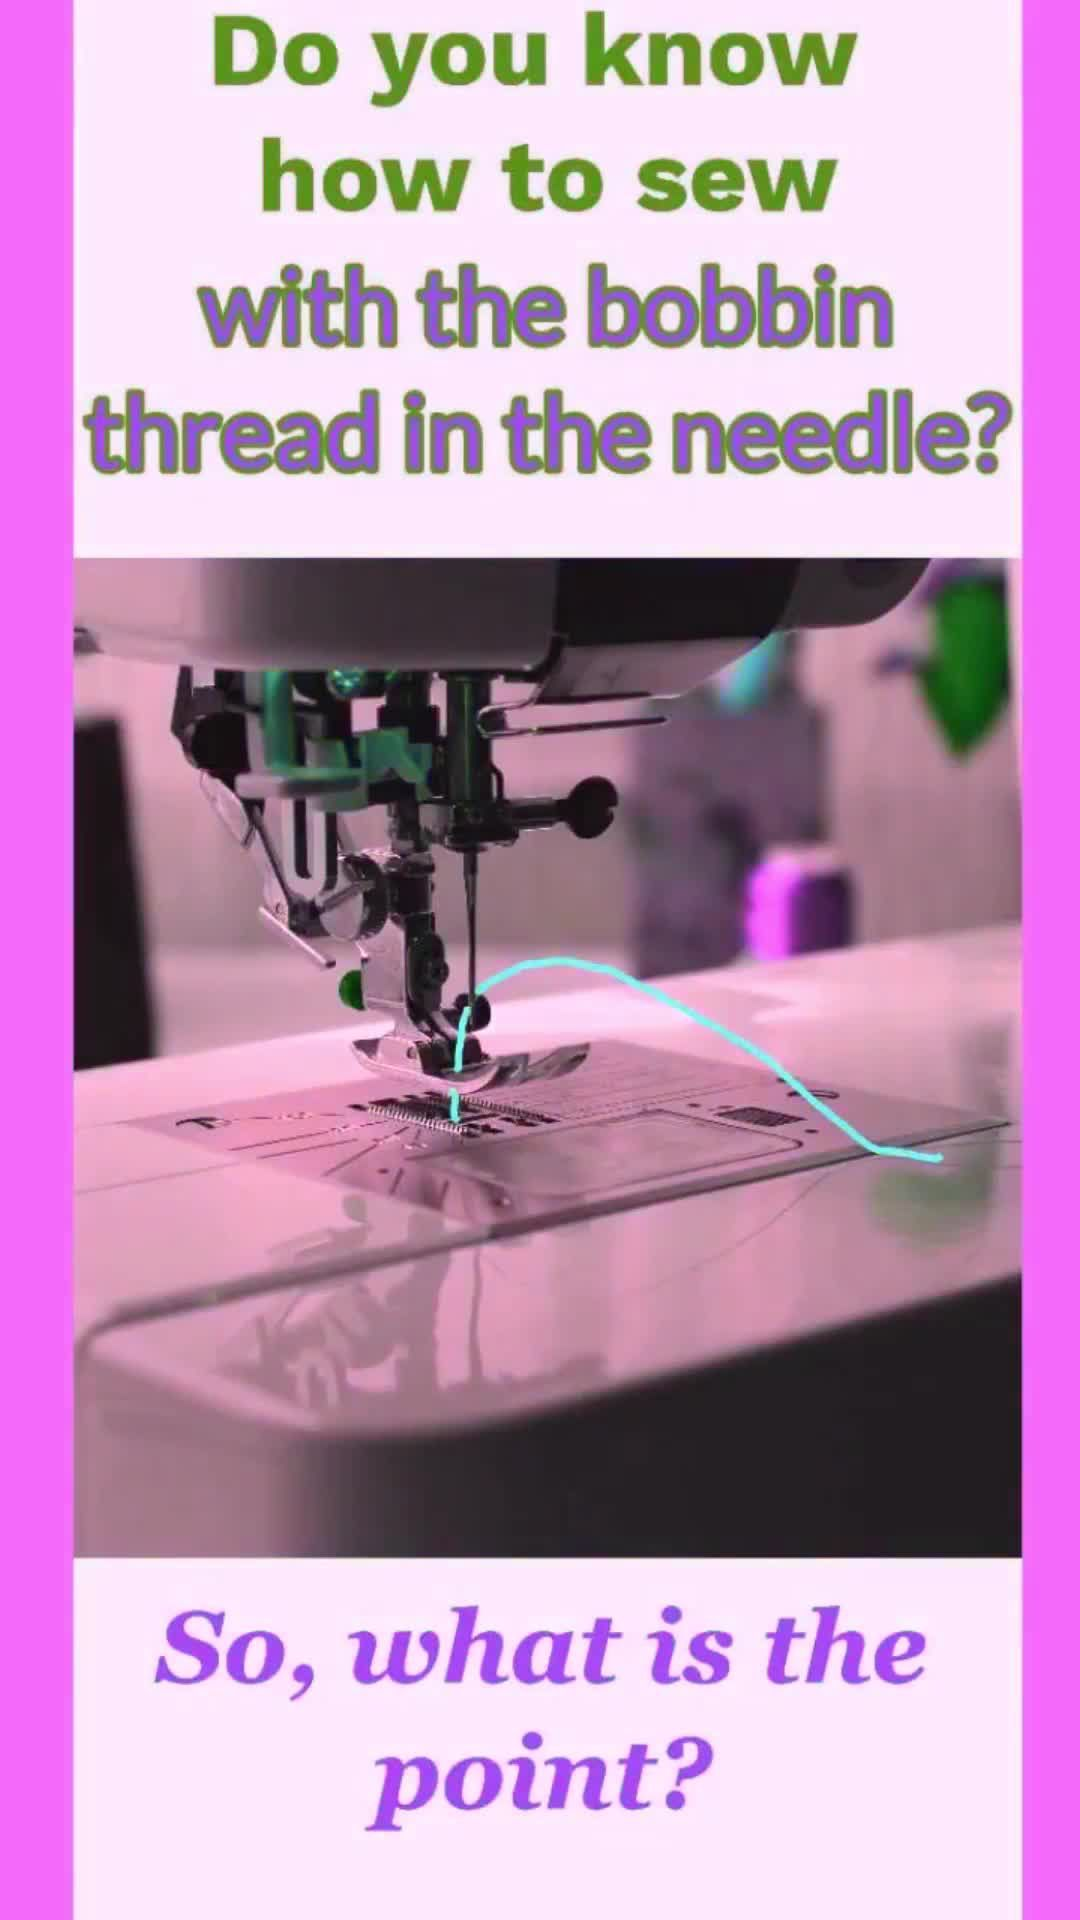 Cool sewing hack - how to sew with the bobbin thread in the needle